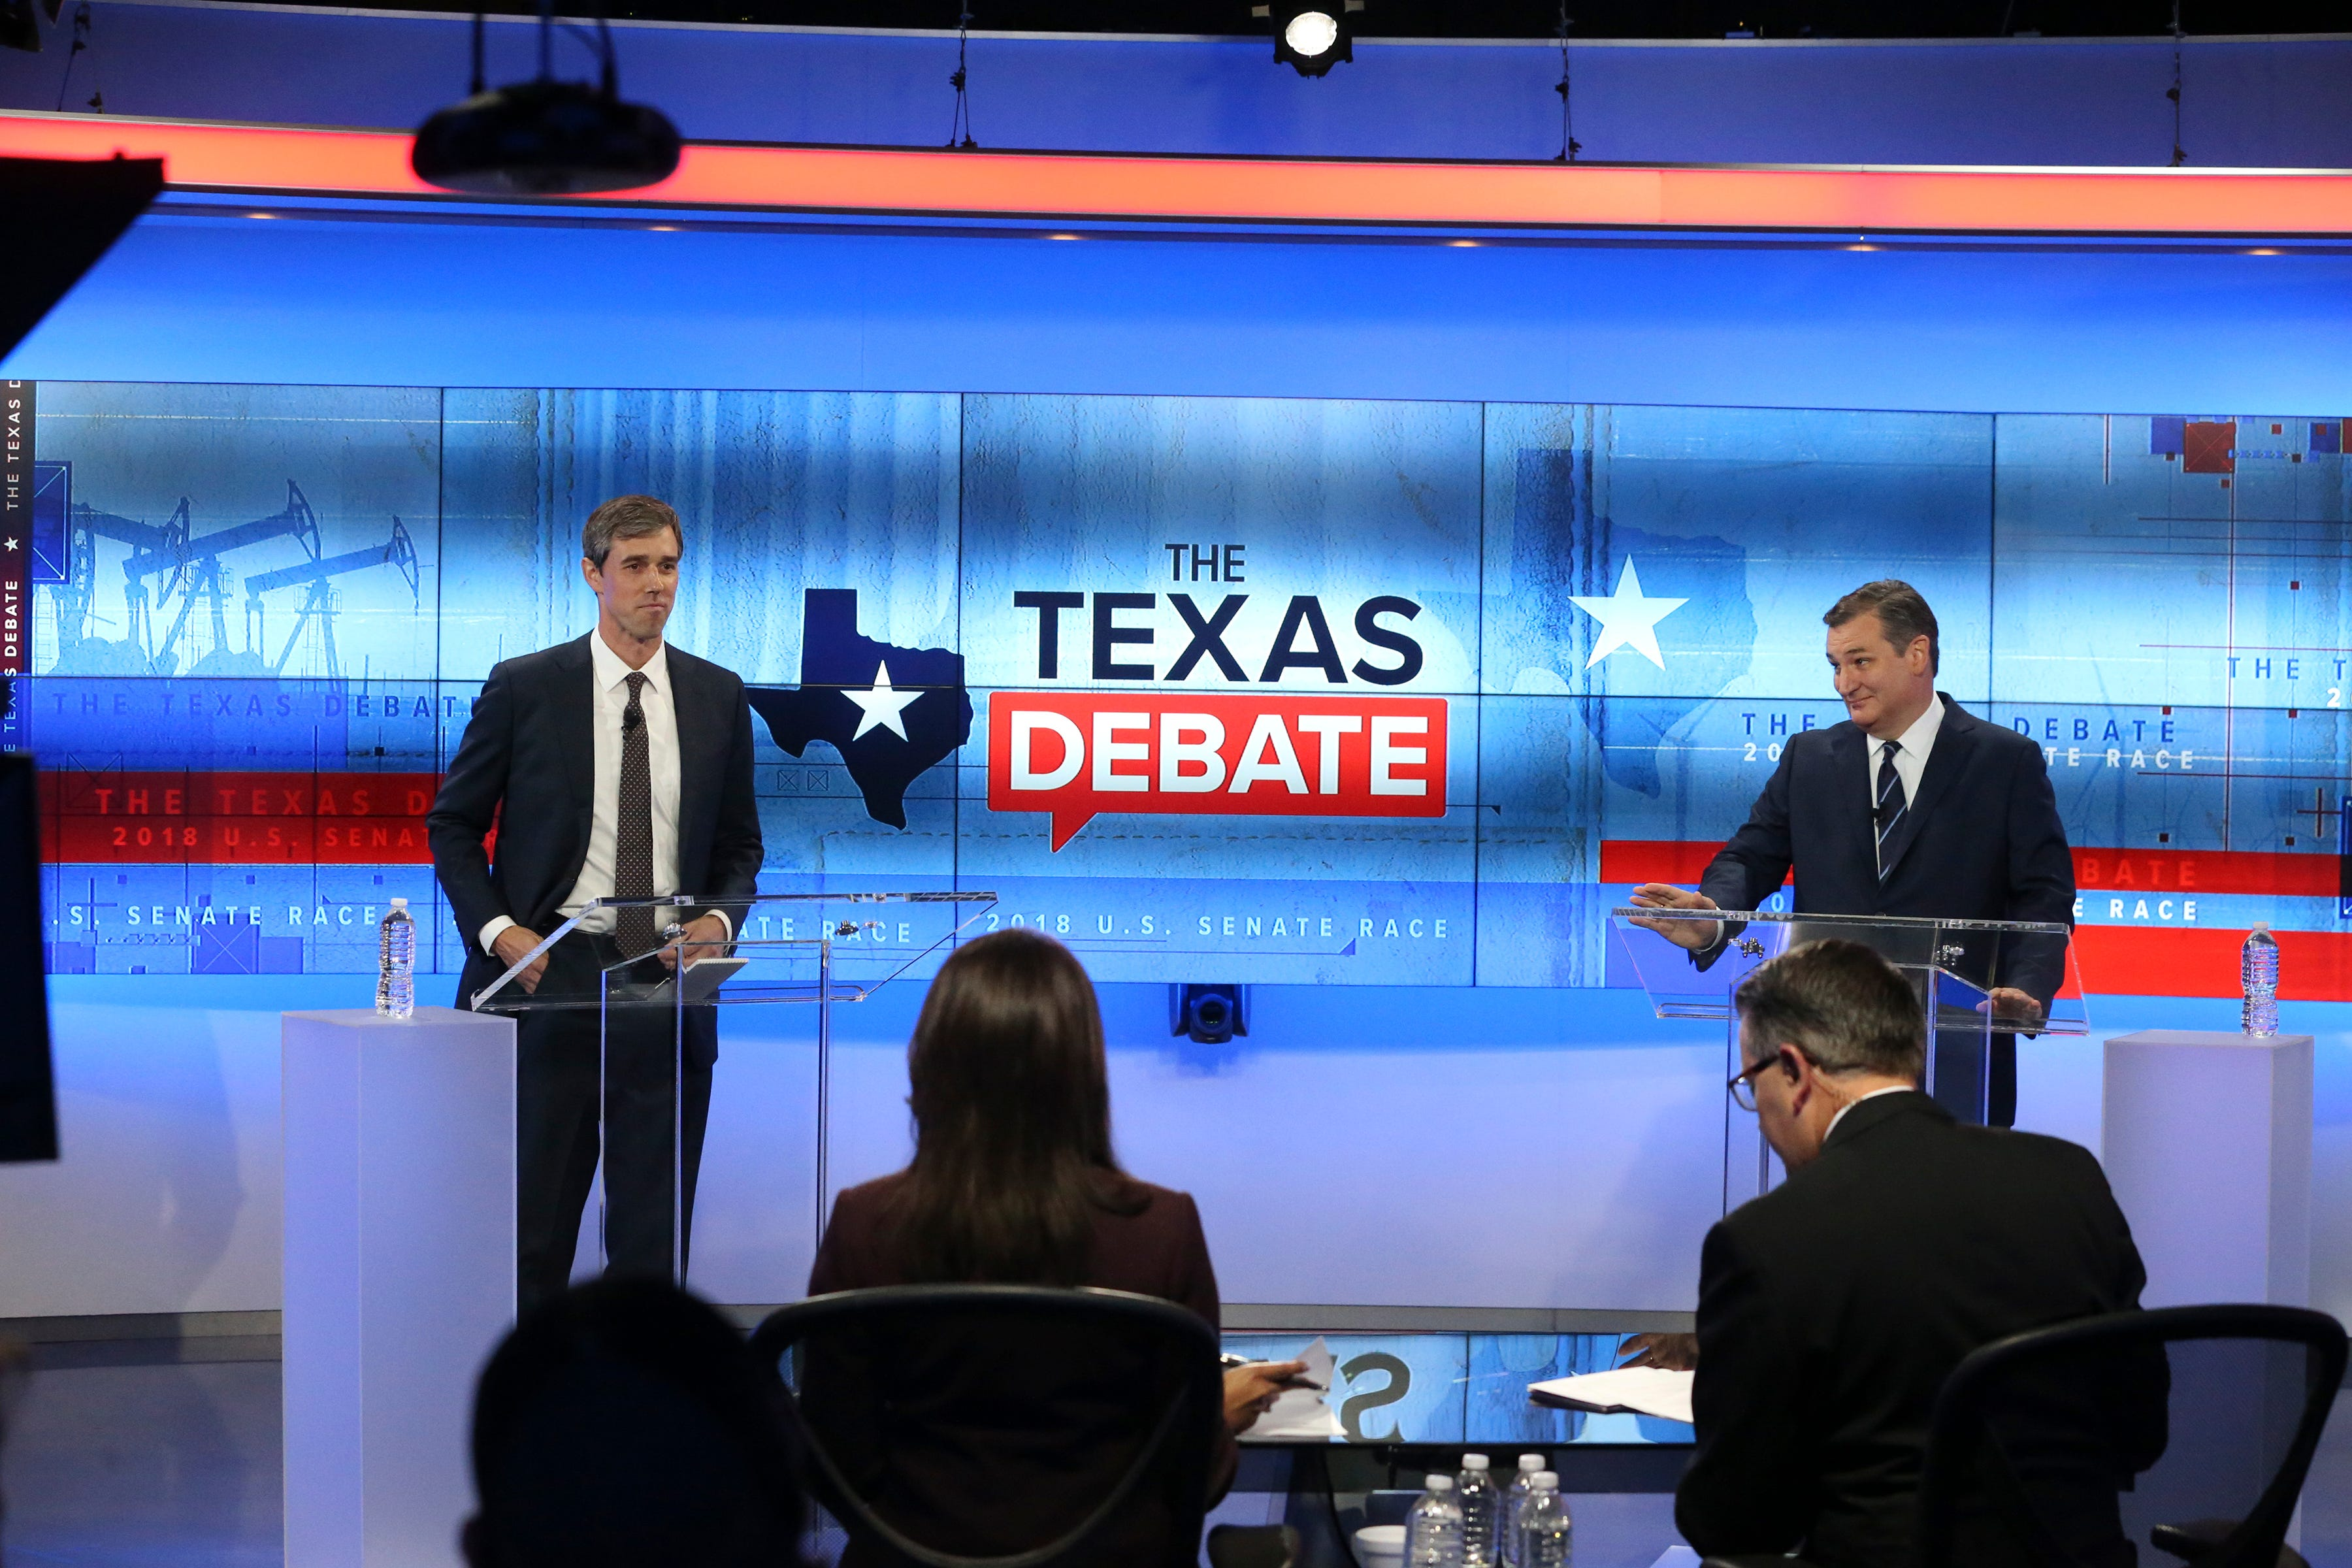 Beto-Cruz Debate: What Ellen DeGeneres and others are saying online about the debate | El Paso Times